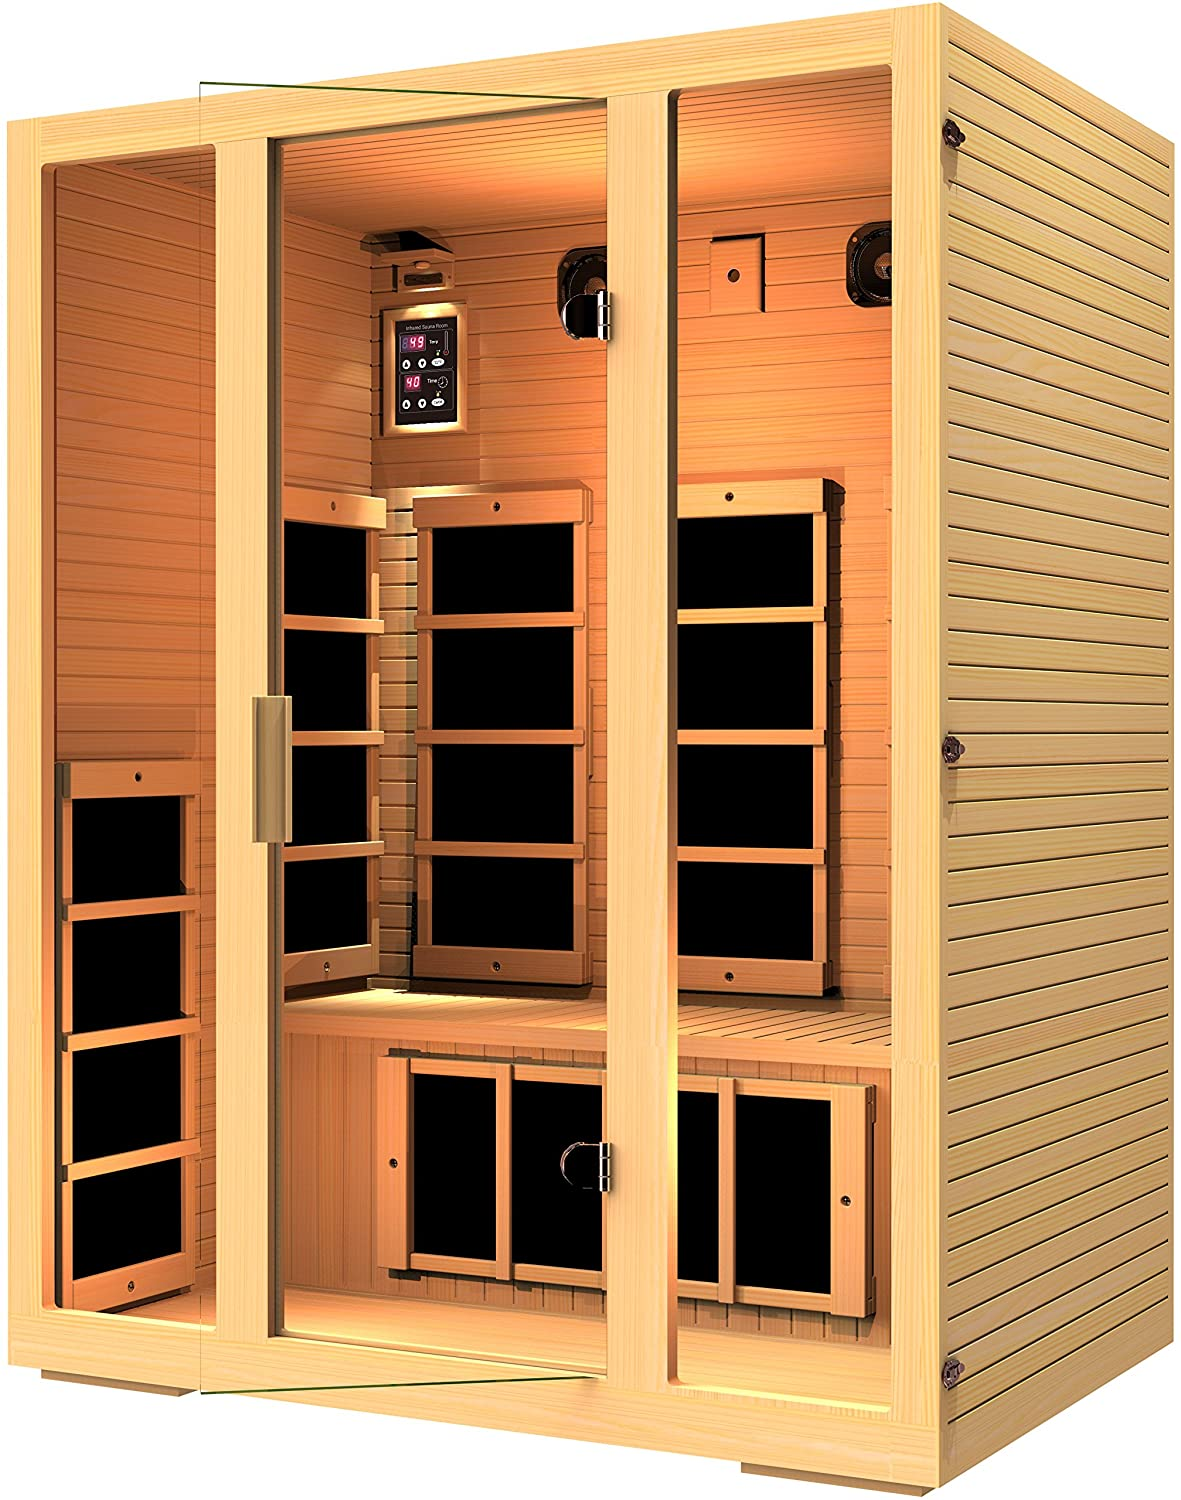 Jnh Lifestyles Mg301hcb Mg317hb Far Infrared Sauna Wiring Diagram Garden Outdoor